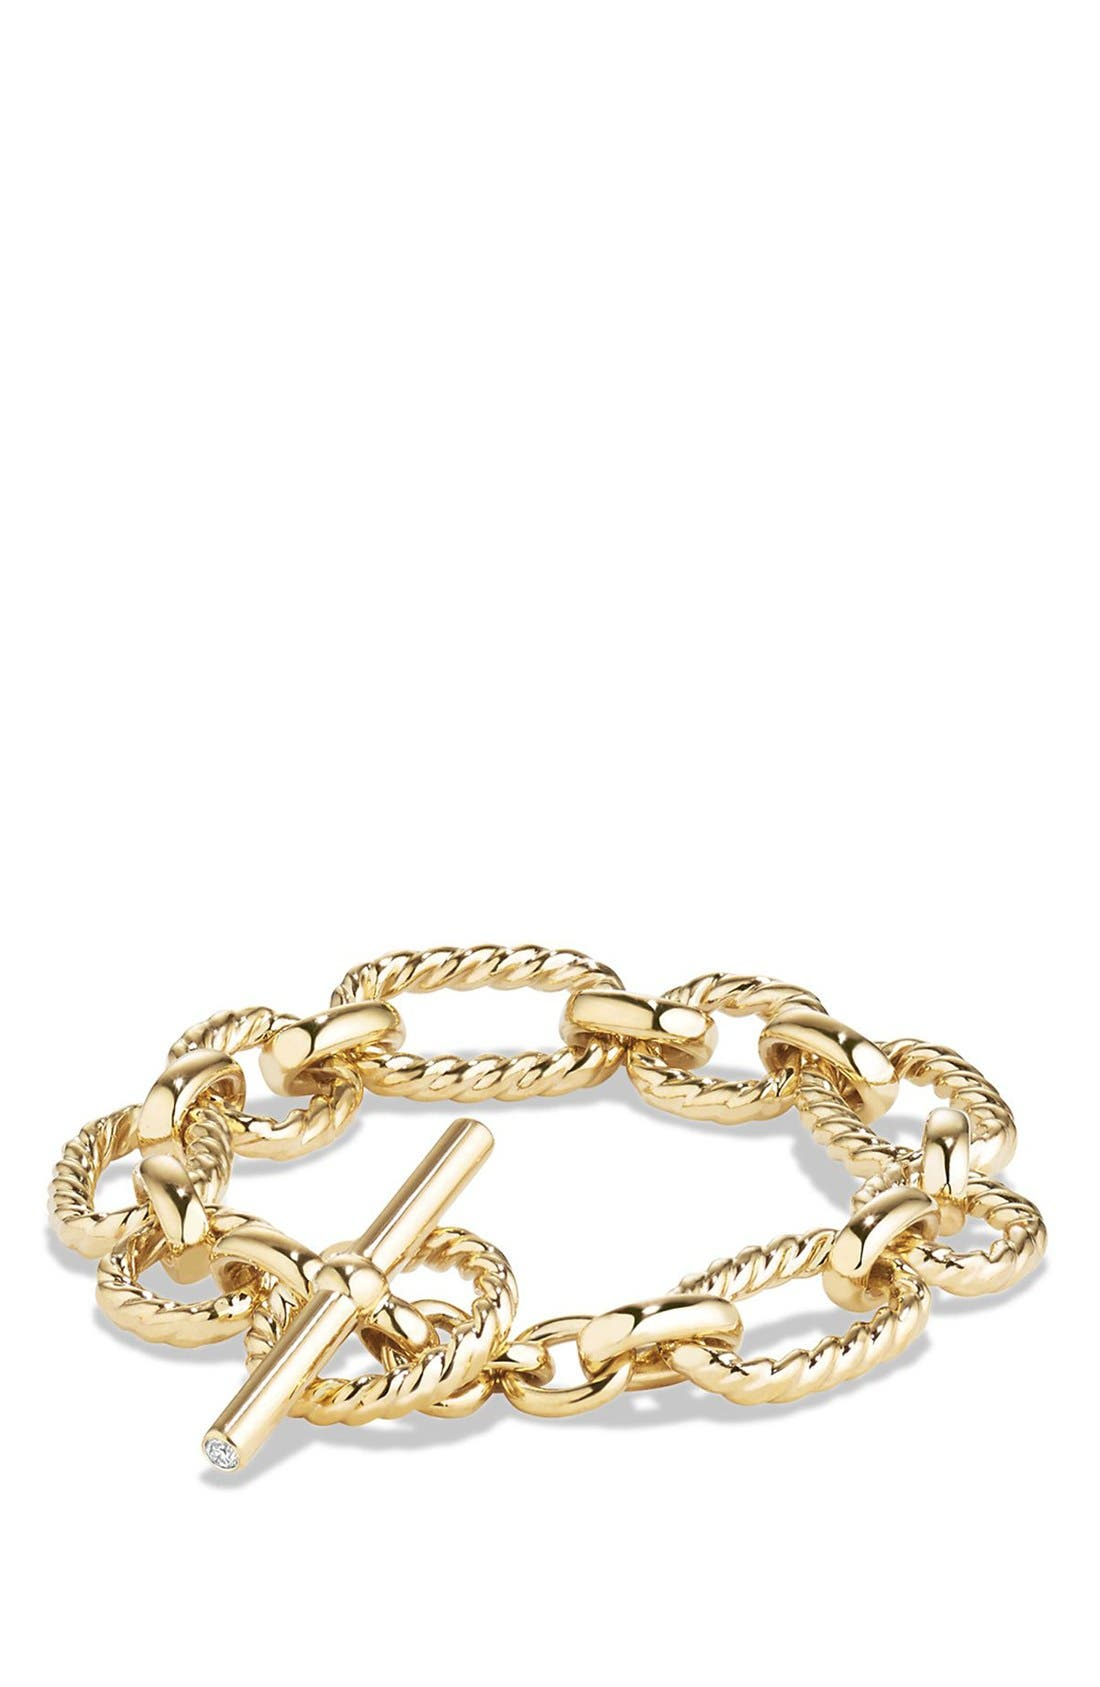 Alternate Image 1 Selected - David Yurman 'Chain' Cushion Link Bracelet with Diamonds in 18K Gold